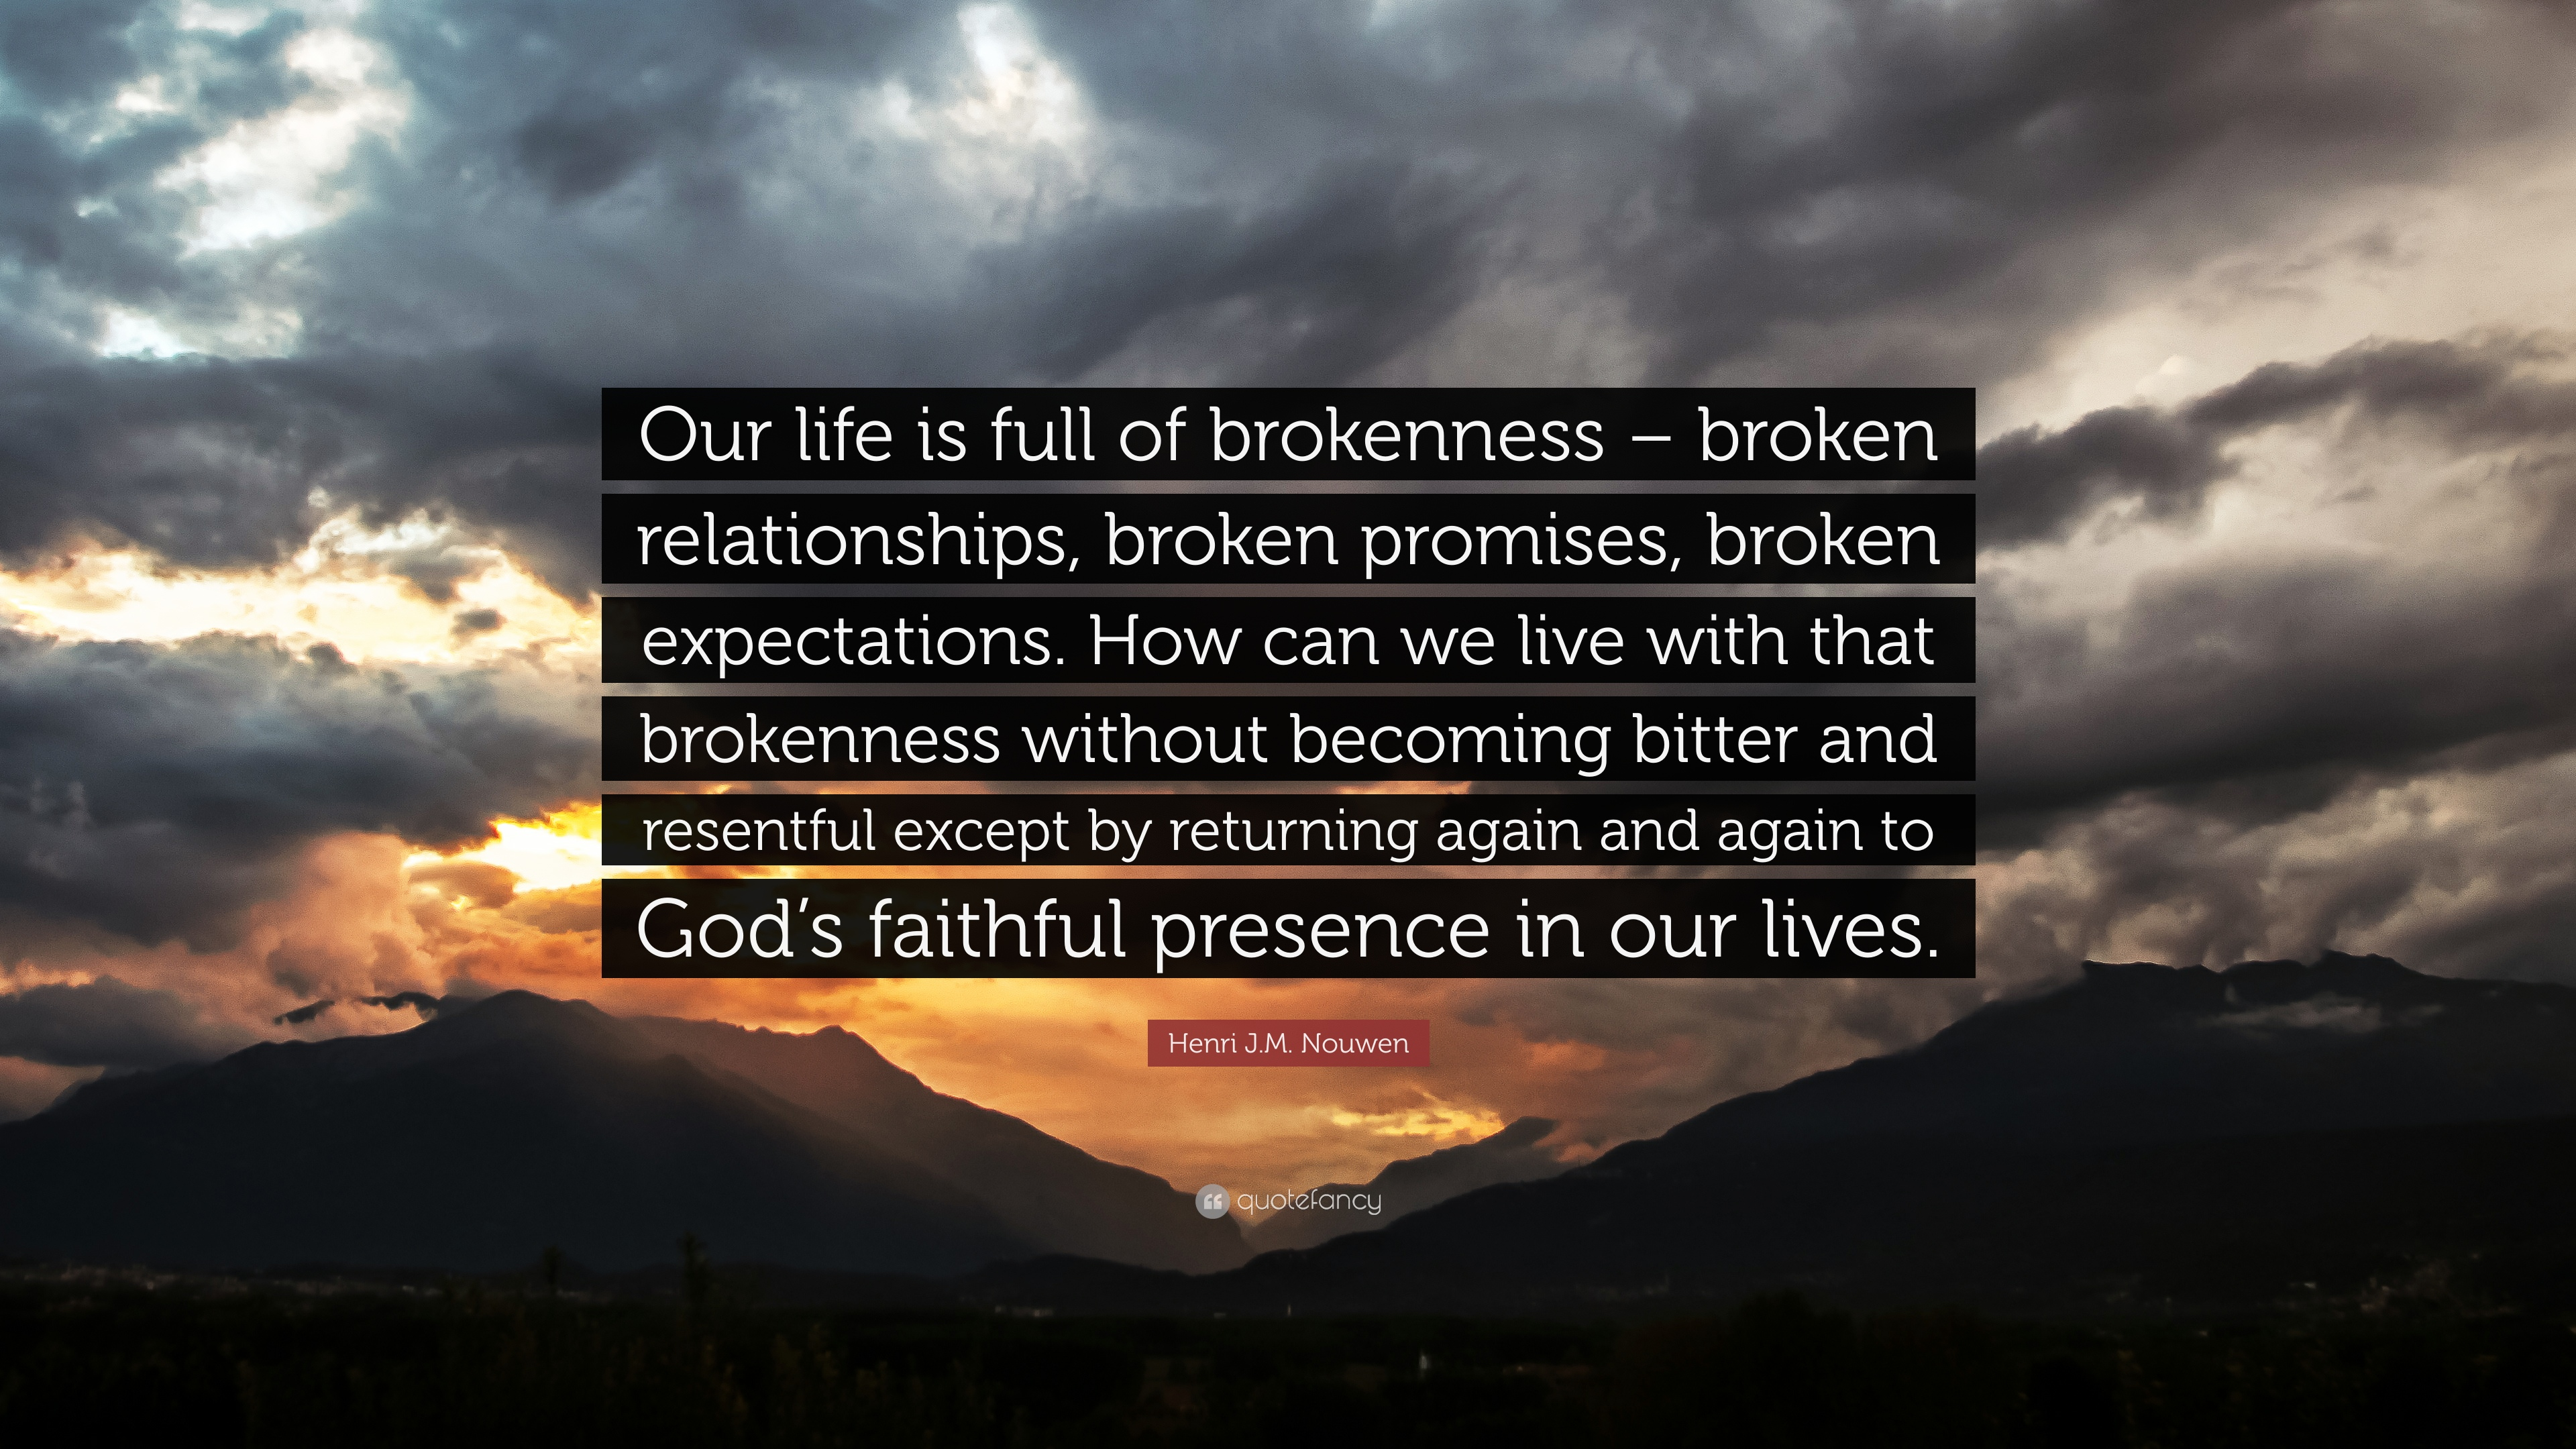 Henri Jm Nouwen Quote Our Life Is Full Of Brokenness Broken